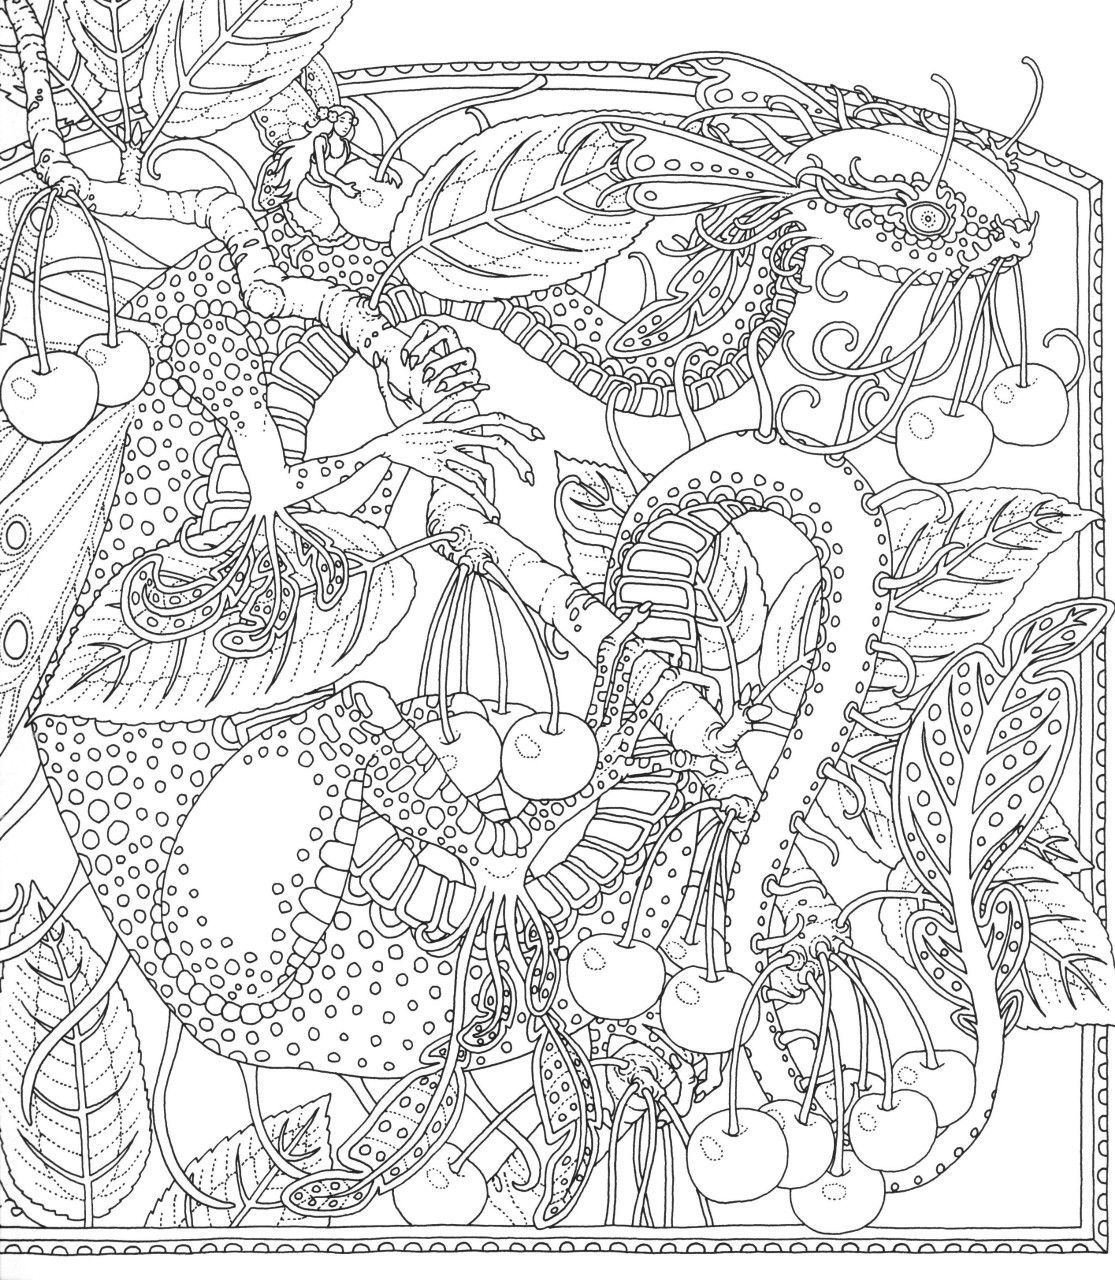 Pin By Mojave On Coloring Pages Cute Coloring Pages Steampunk Coloring Coloring Pages